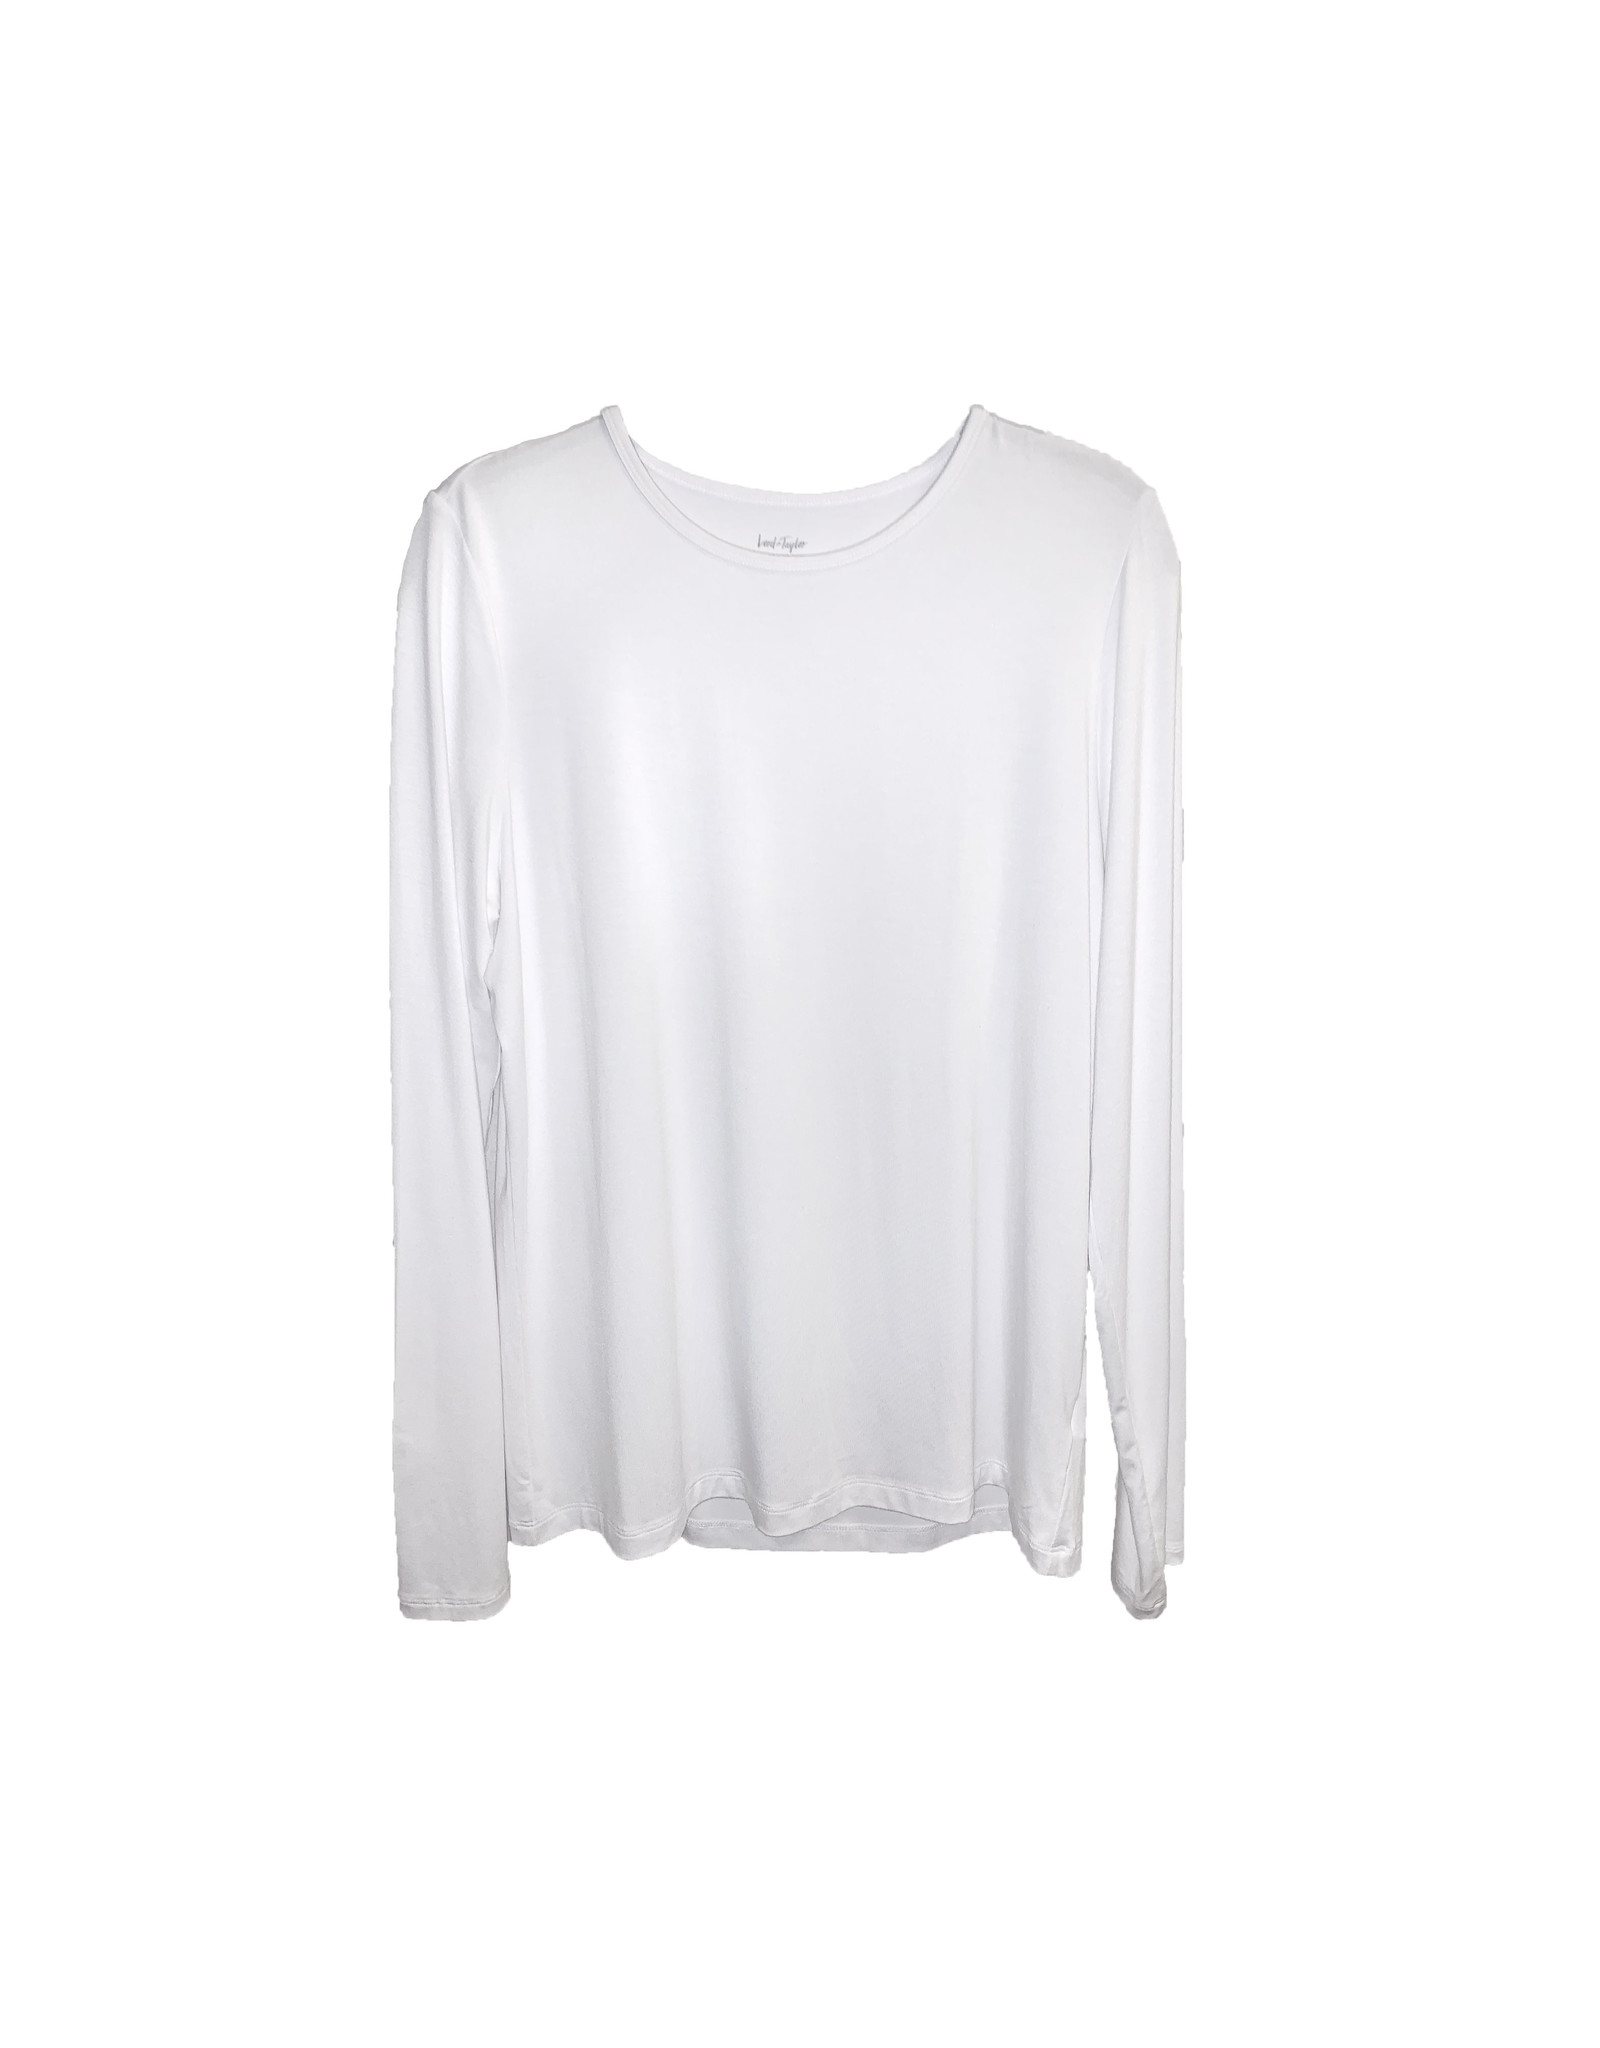 Lord & Taylor Lord & Taylor Iconic Fit White Petite Sweatshirt